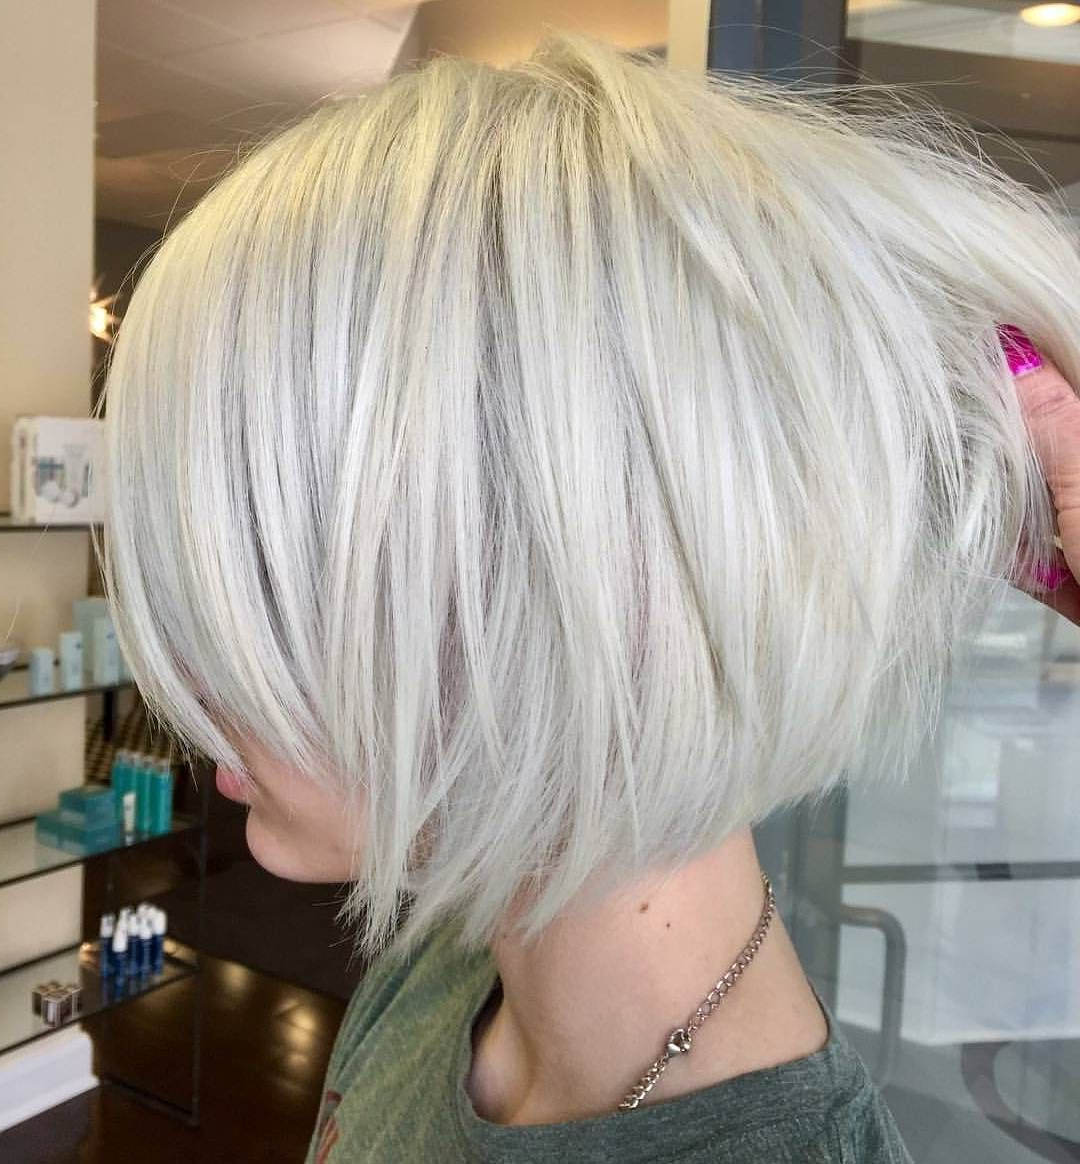 10 Layered Bob Hairstyles – Look Fab In New Blonde Shades | Hair Throughout White Blonde Curly Layered Bob Hairstyles (View 1 of 20)